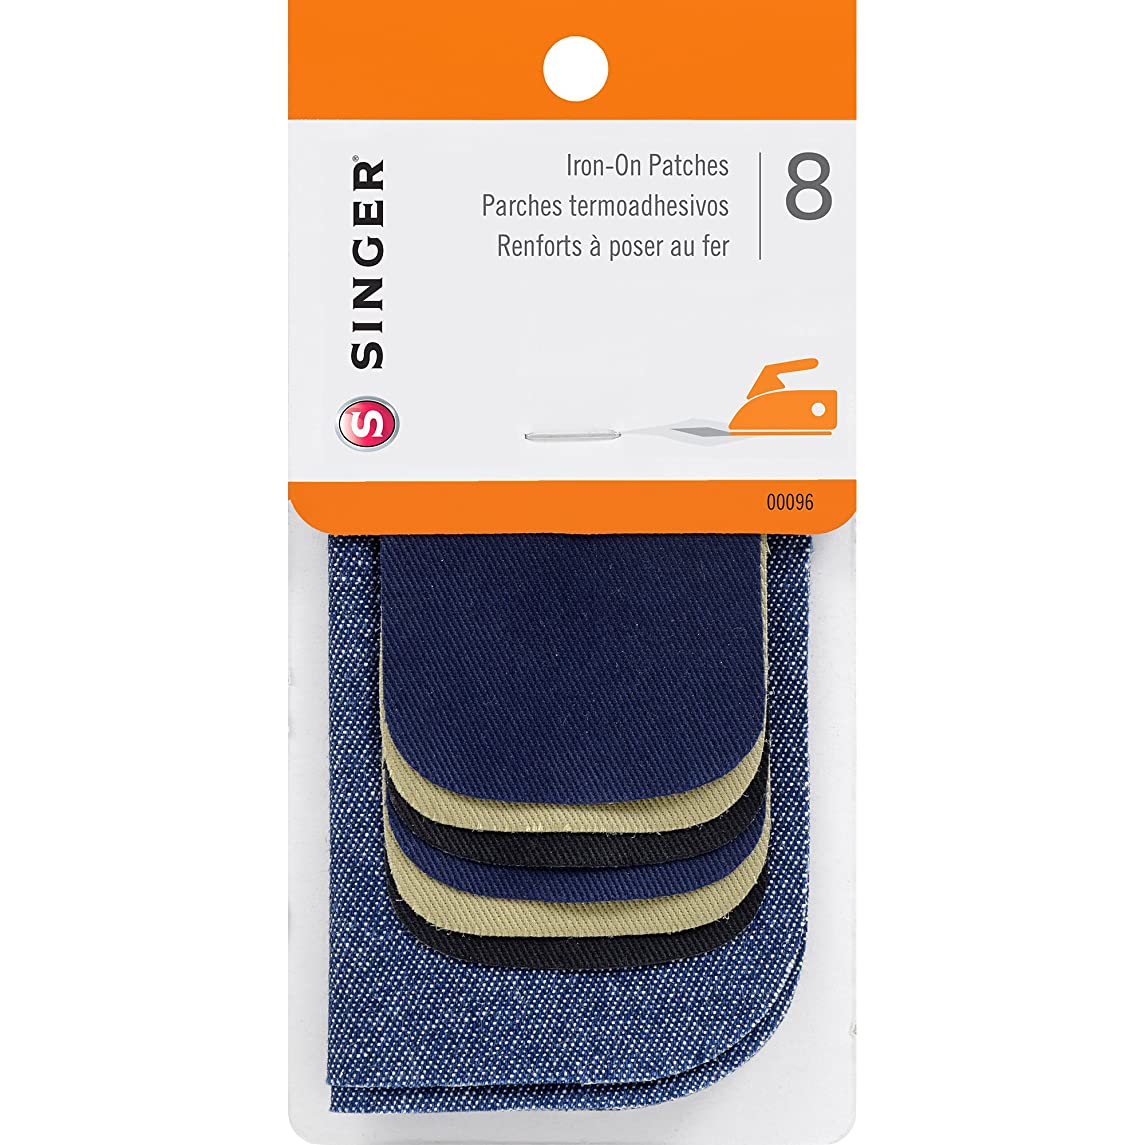 SINGER 00096 Iron-On Patches Combo, Repair Kit for Jeans and Pants, 8-Count